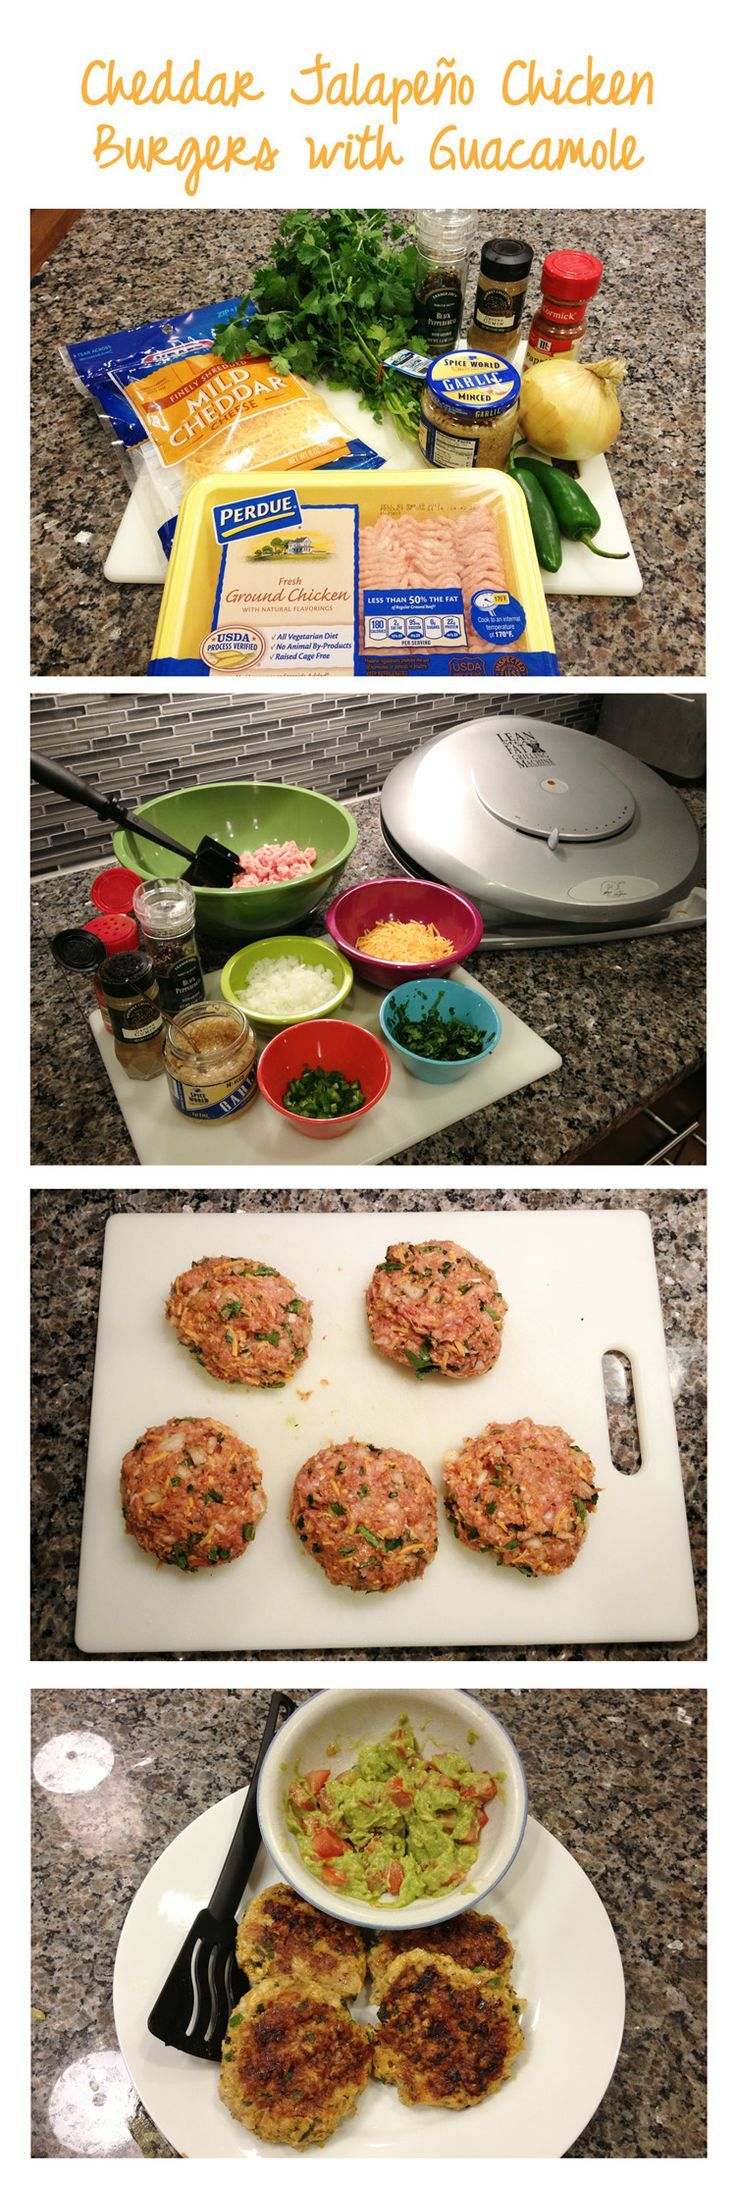 Cheddar Jalapeno Chicken Burger Recipe. - our new favorite burger ...